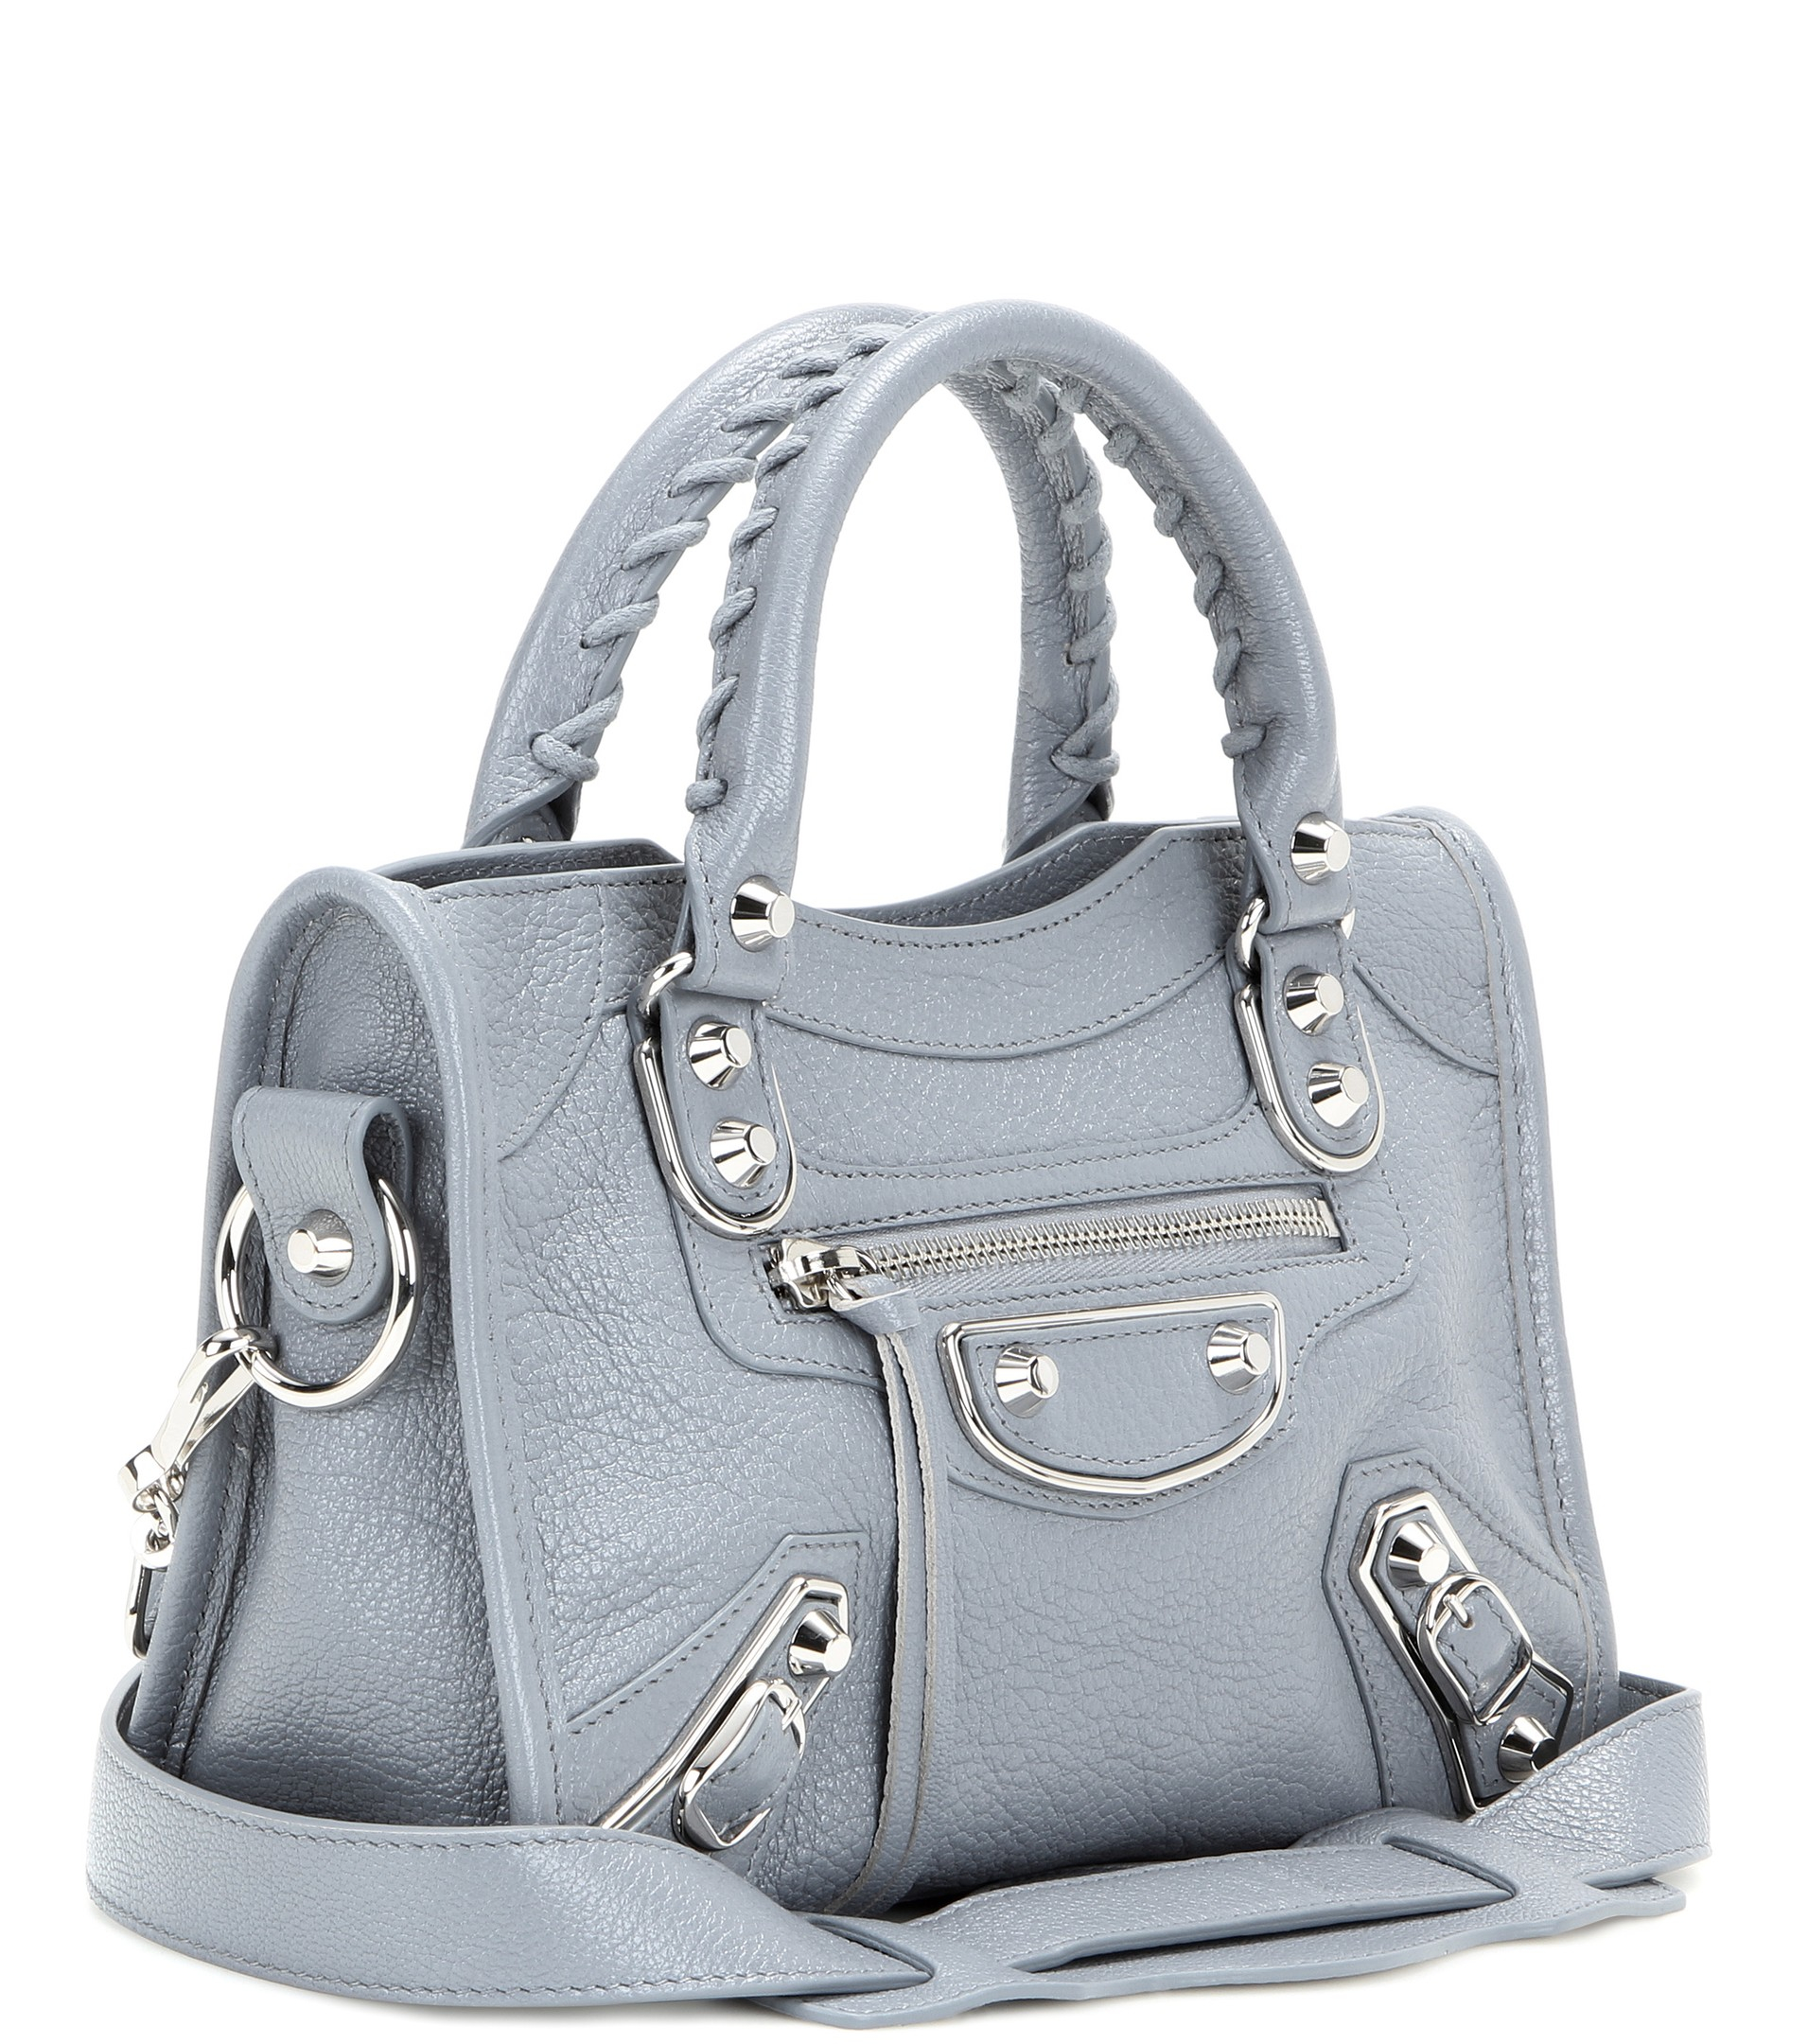 ... the best 14751 e8110 Lyst - Balenciaga Classic Metallic Edge Mini City  Leather Sh  new product ffc84 4c58a Womens Tote ... 6d8459c8c8